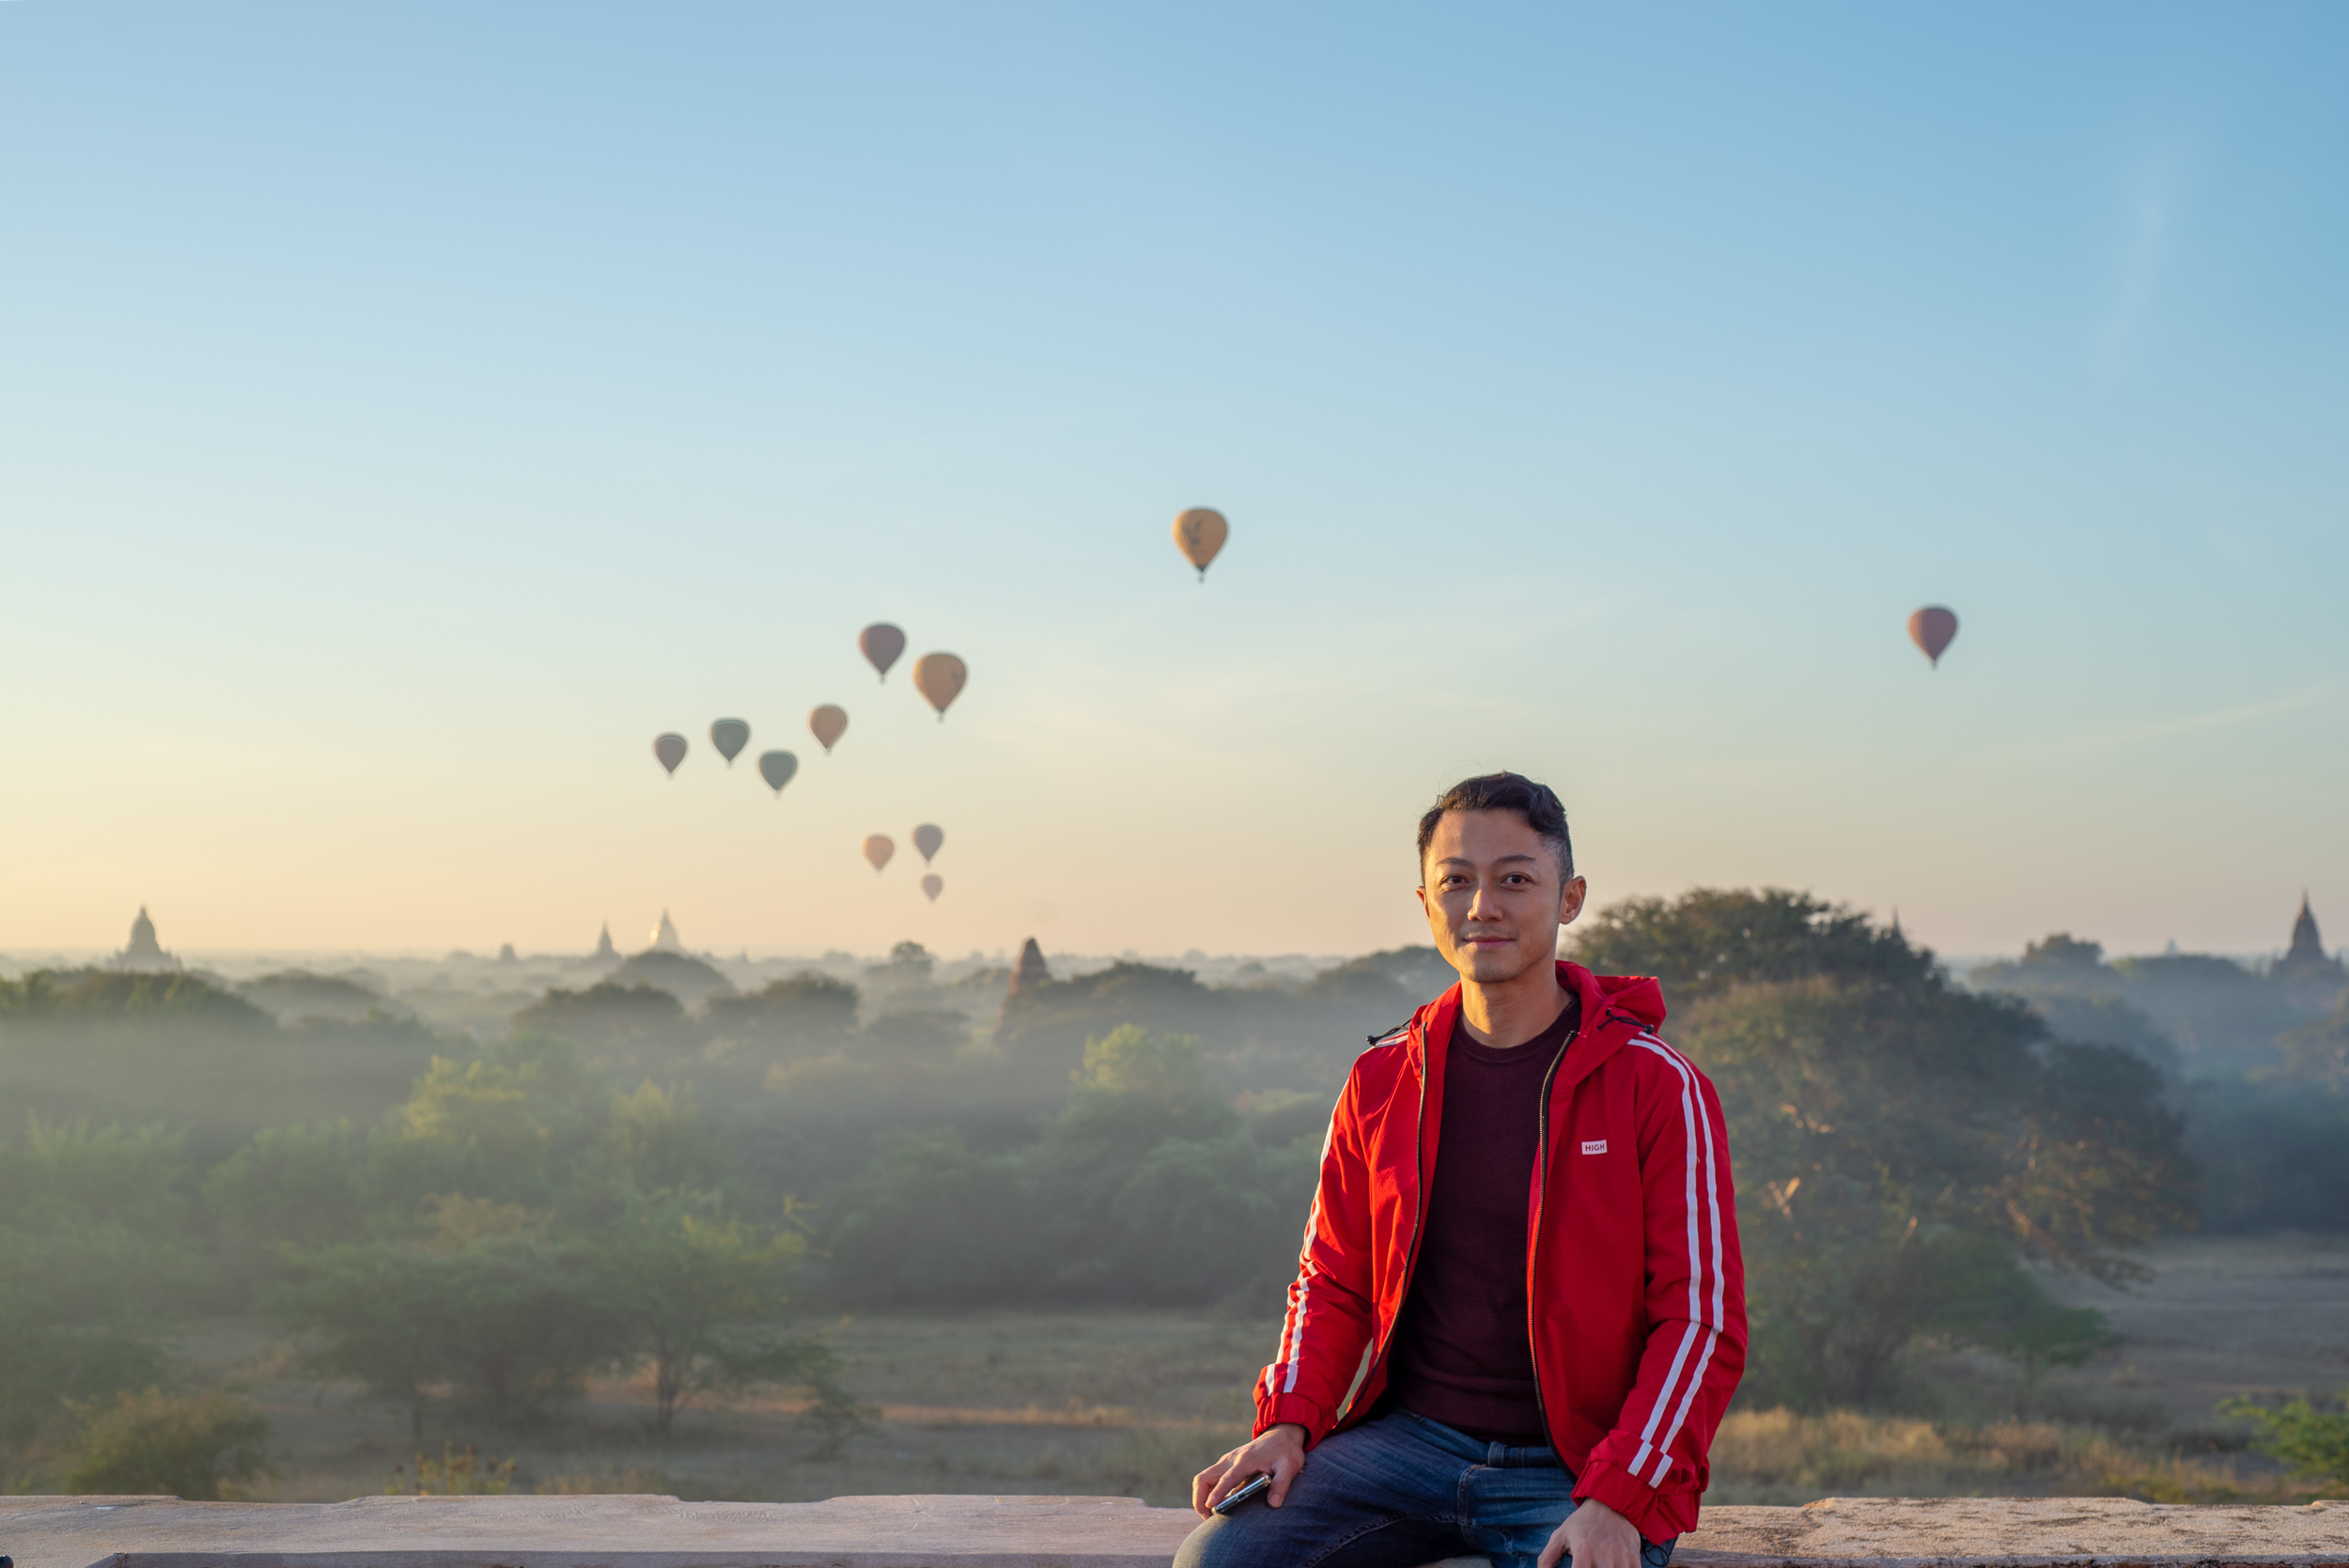 Portait with red jacket and hot air ballooons over Bagan after sunrise.